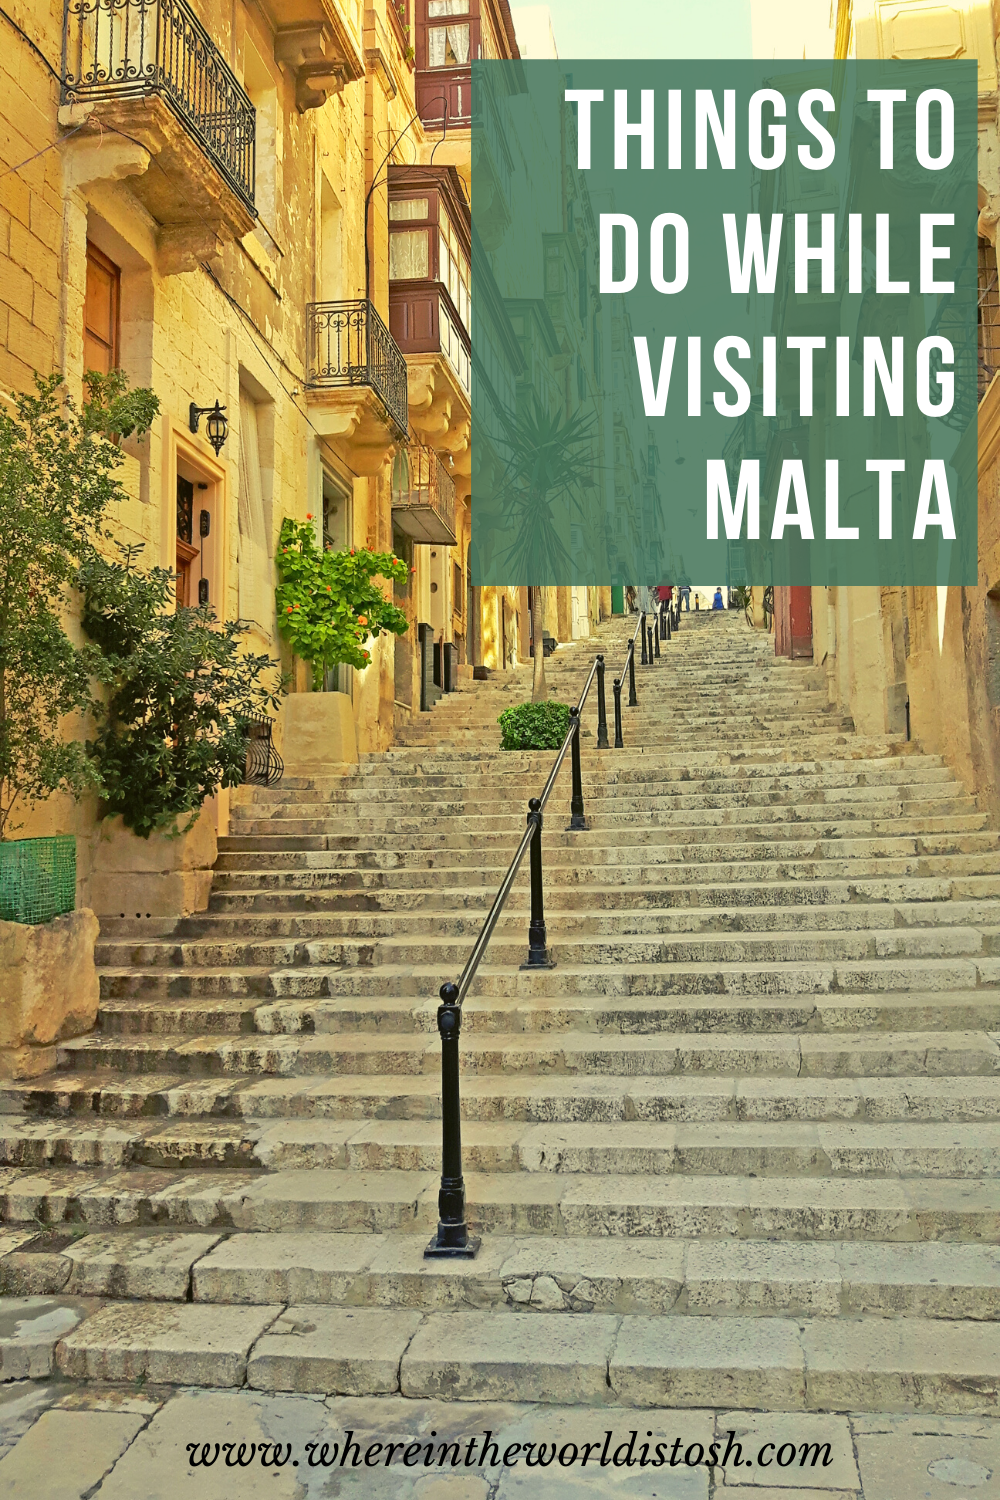 Things To Do While Visiting Malta